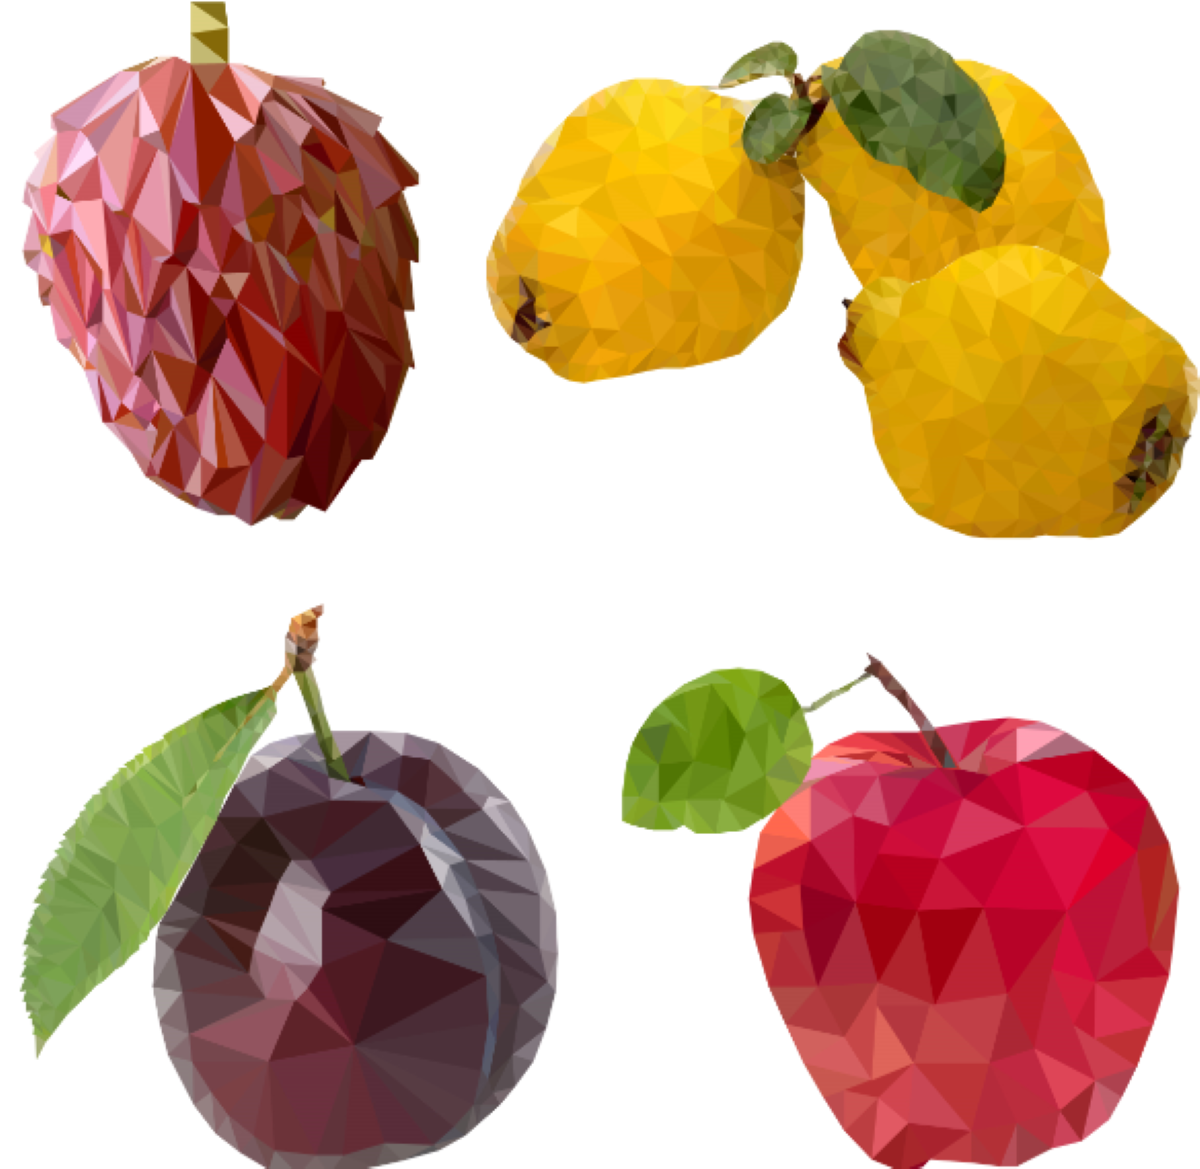 Fruit. Annona, Quince, Plum, Apple.